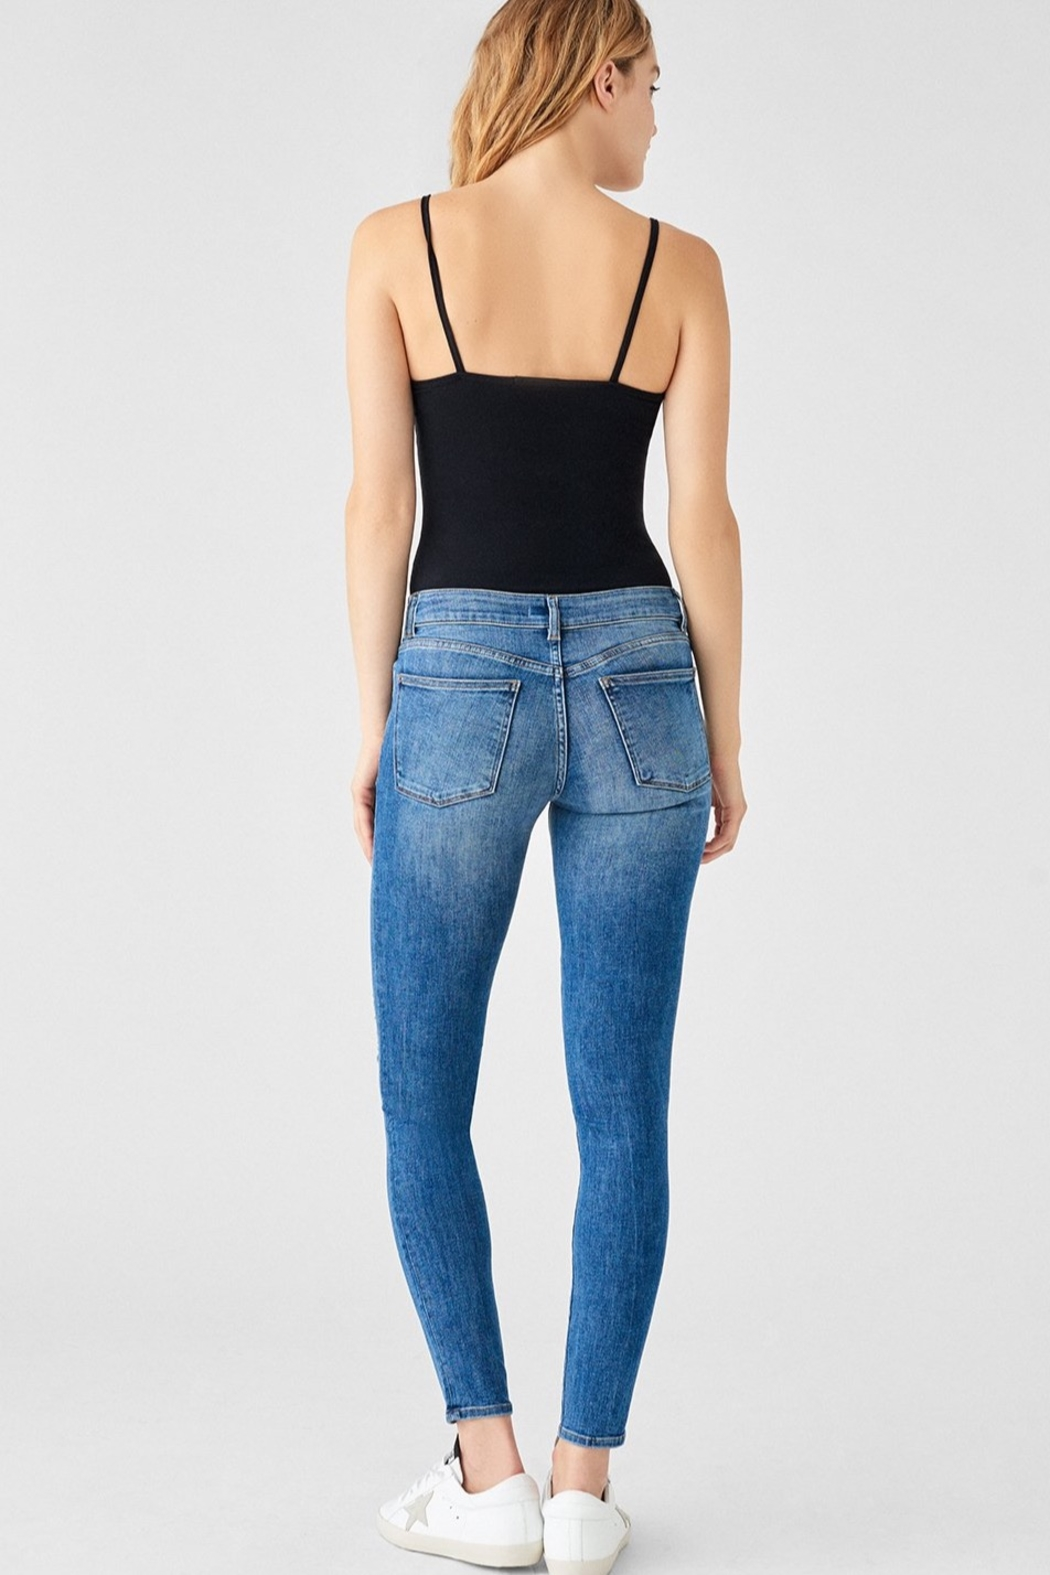 DL1961 Florence Mid Rise Skinny in Full Richland - Front Full Image